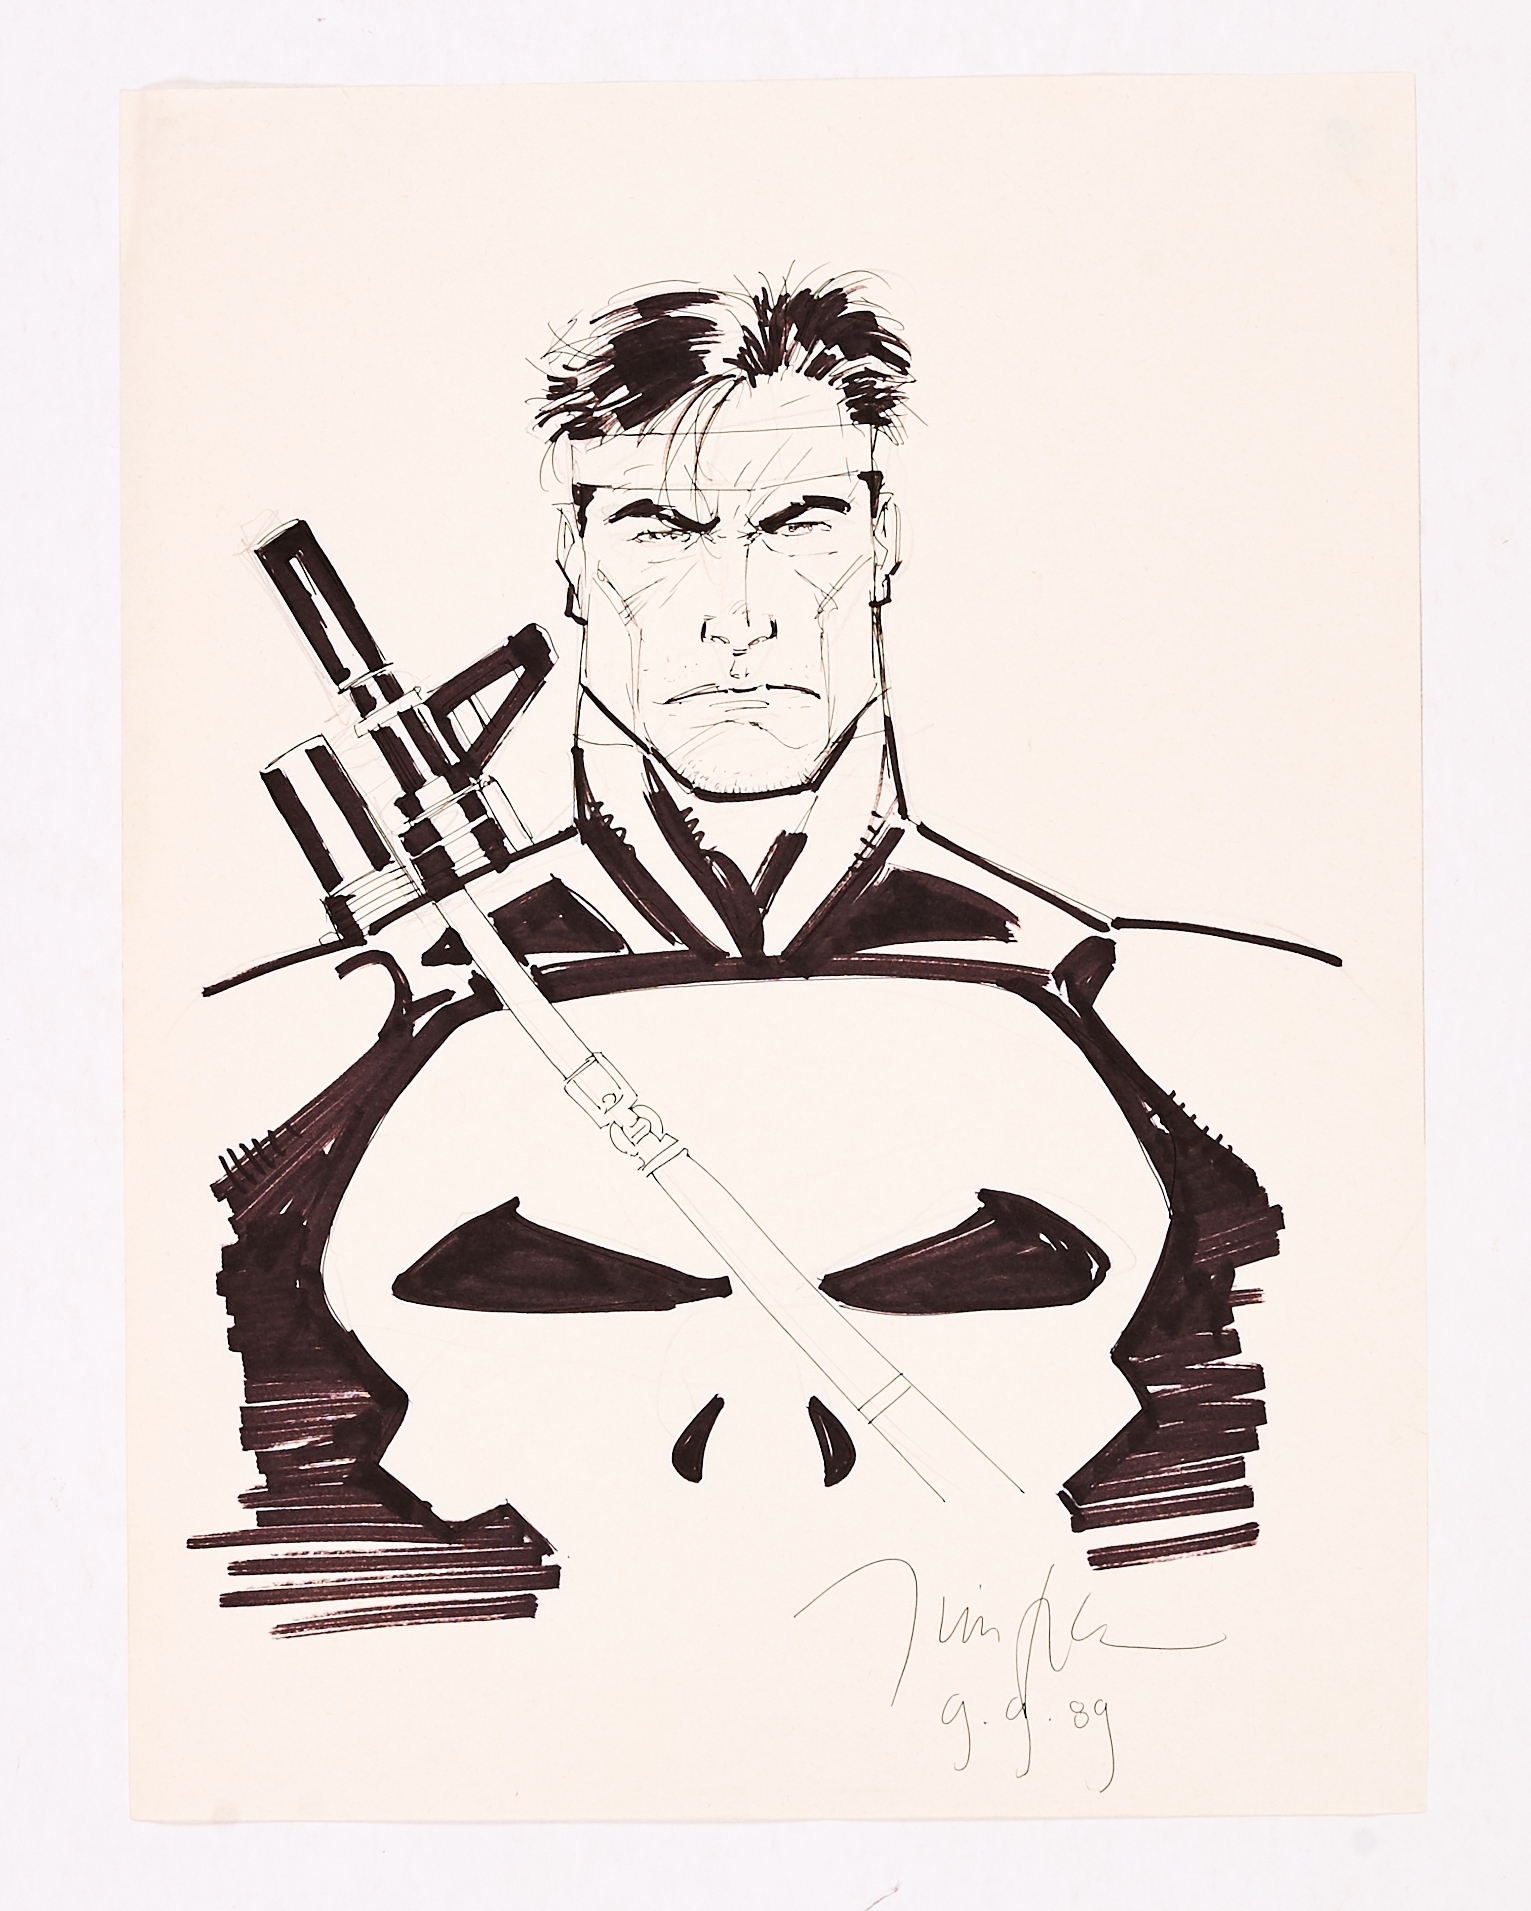 Lot 252 - The Punisher Sketch drawn and signed by Jim Lee (9.9.'89). Ink and marker pen on paper. 15 x 11 ins